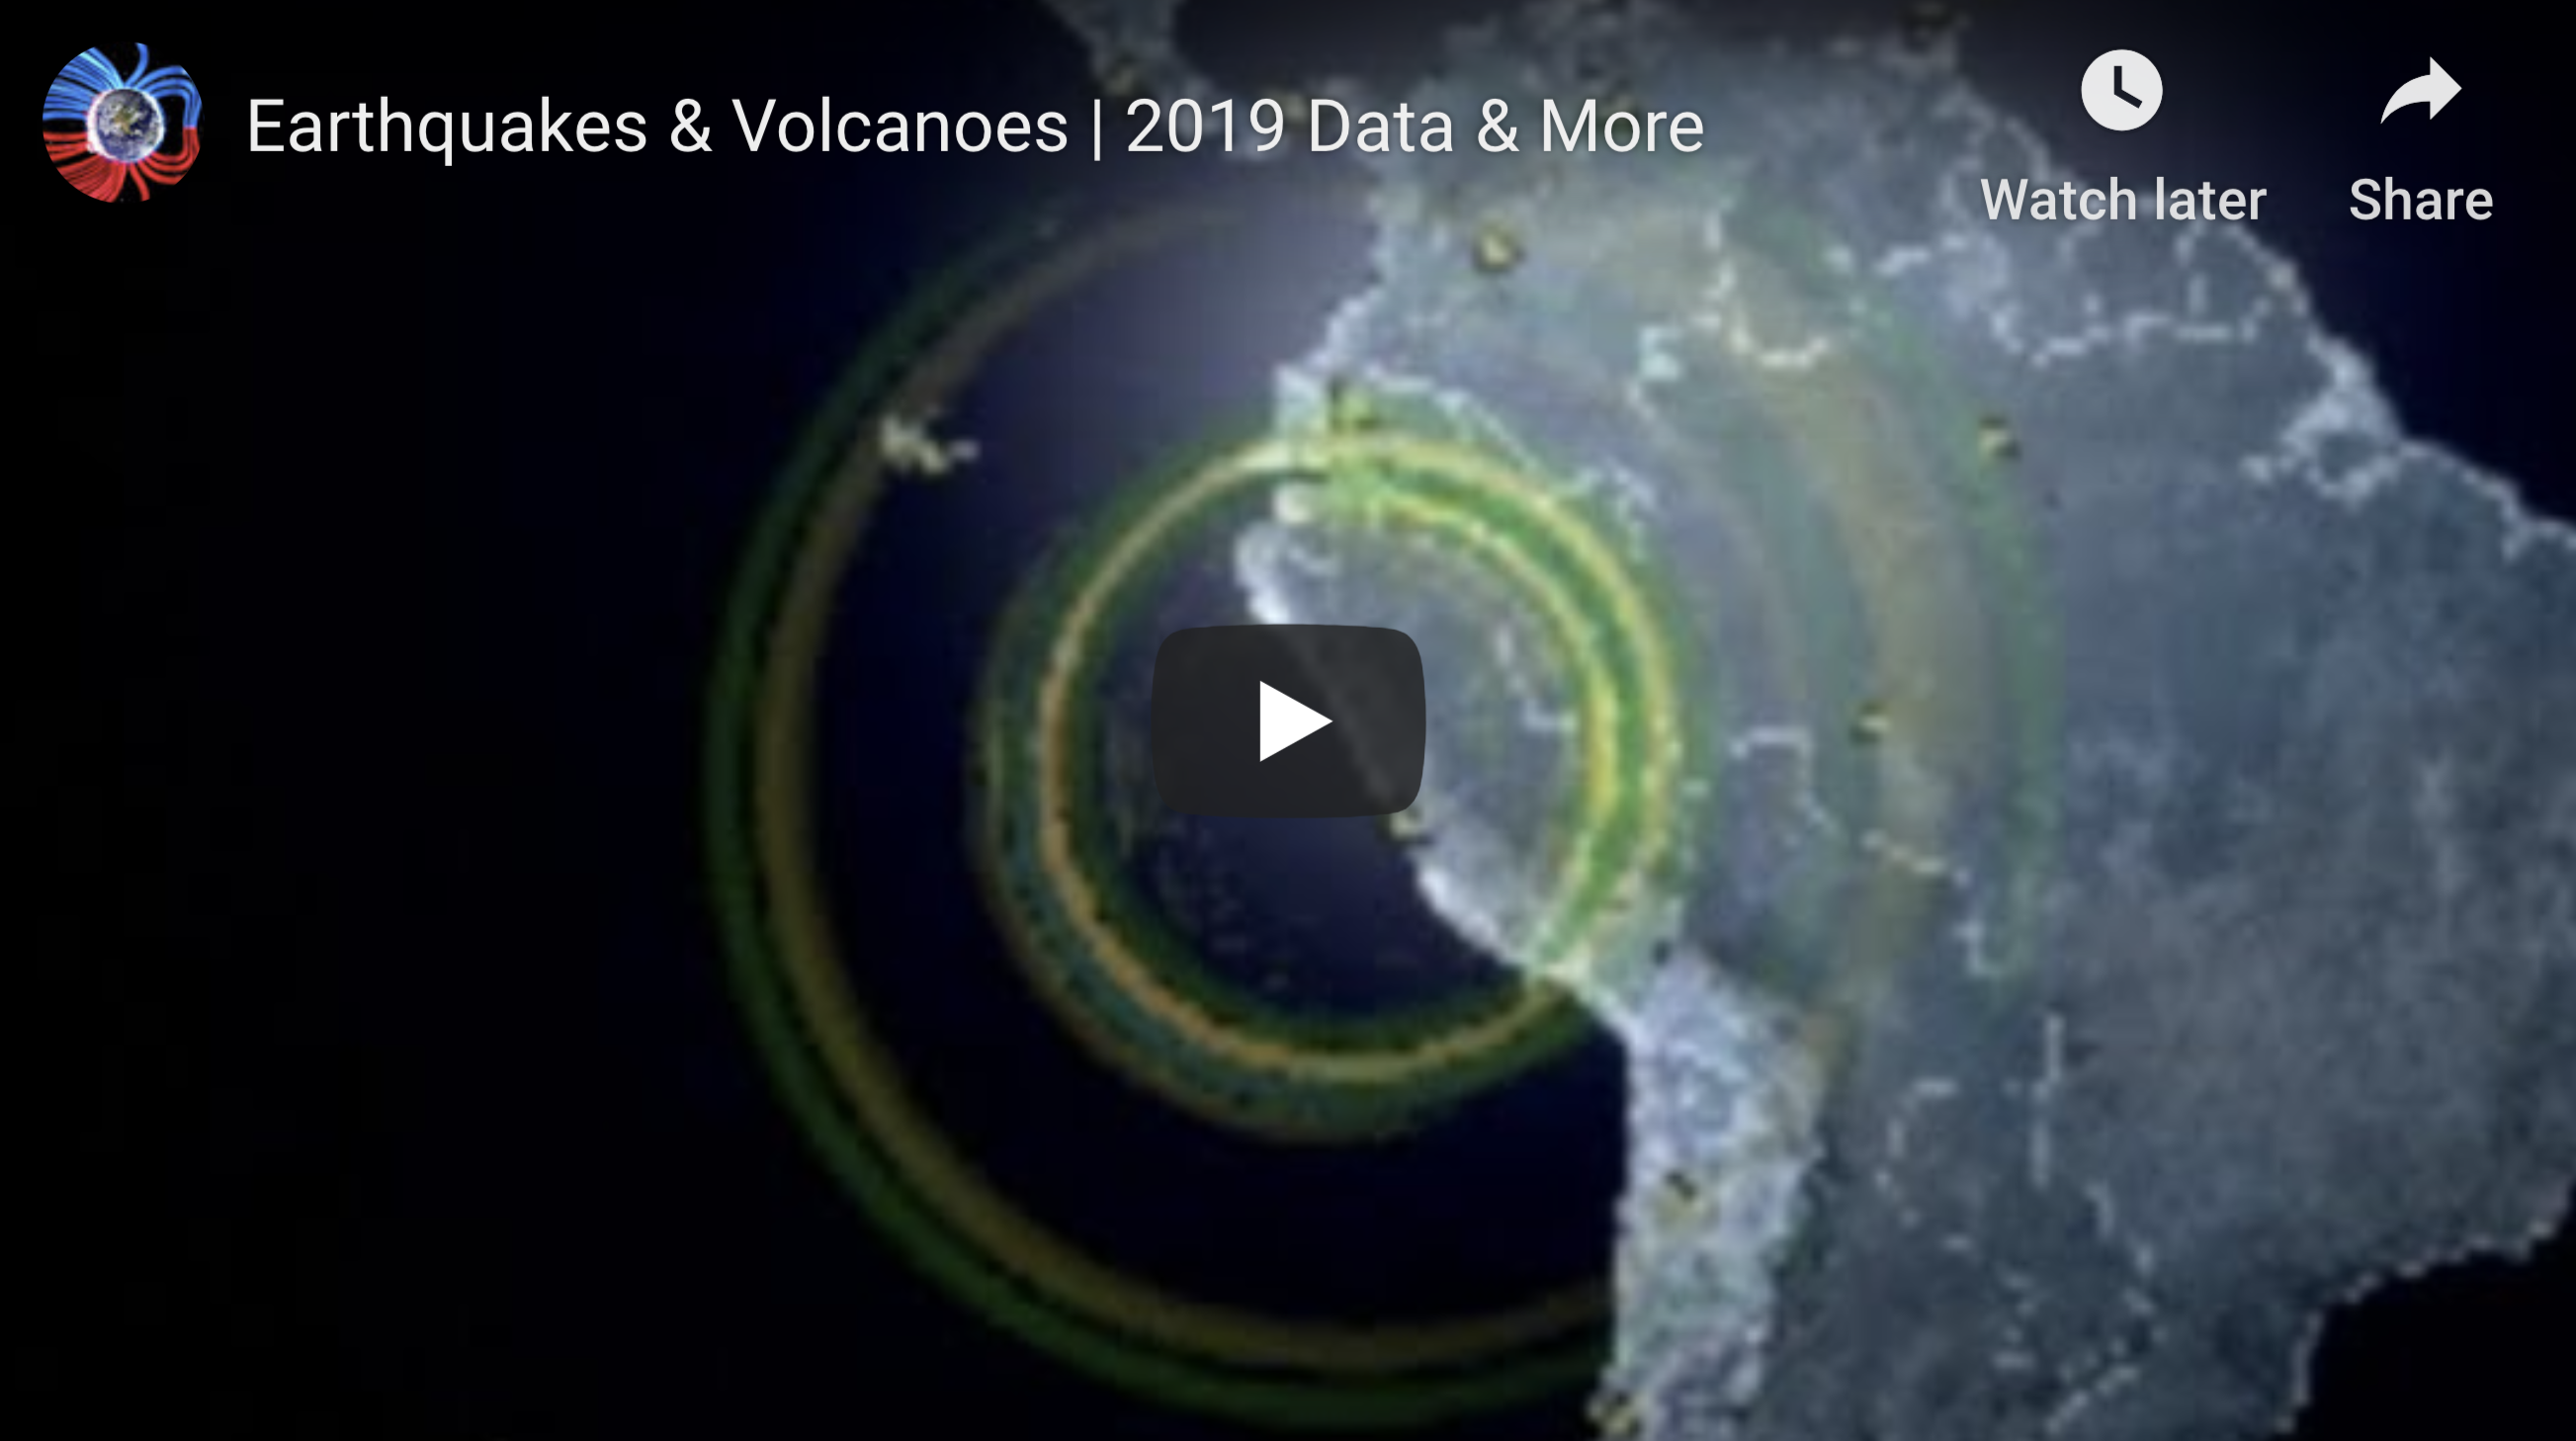 Earthquakes & Volcanoes 2019 Data & More 1 17 2020